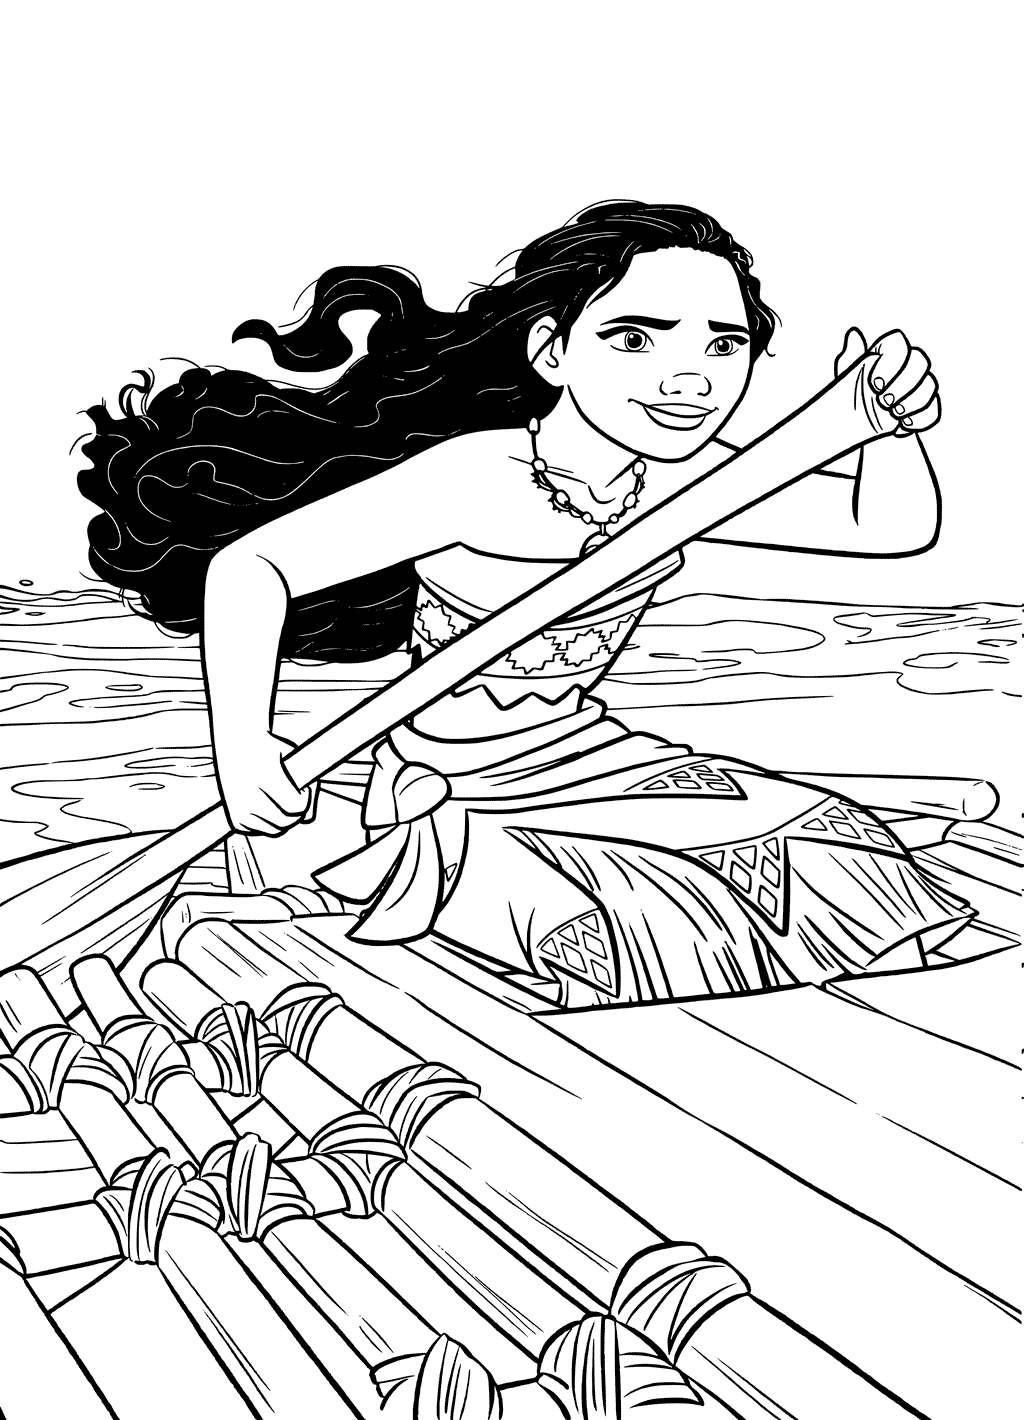 Moana On The Boat Coloring Page